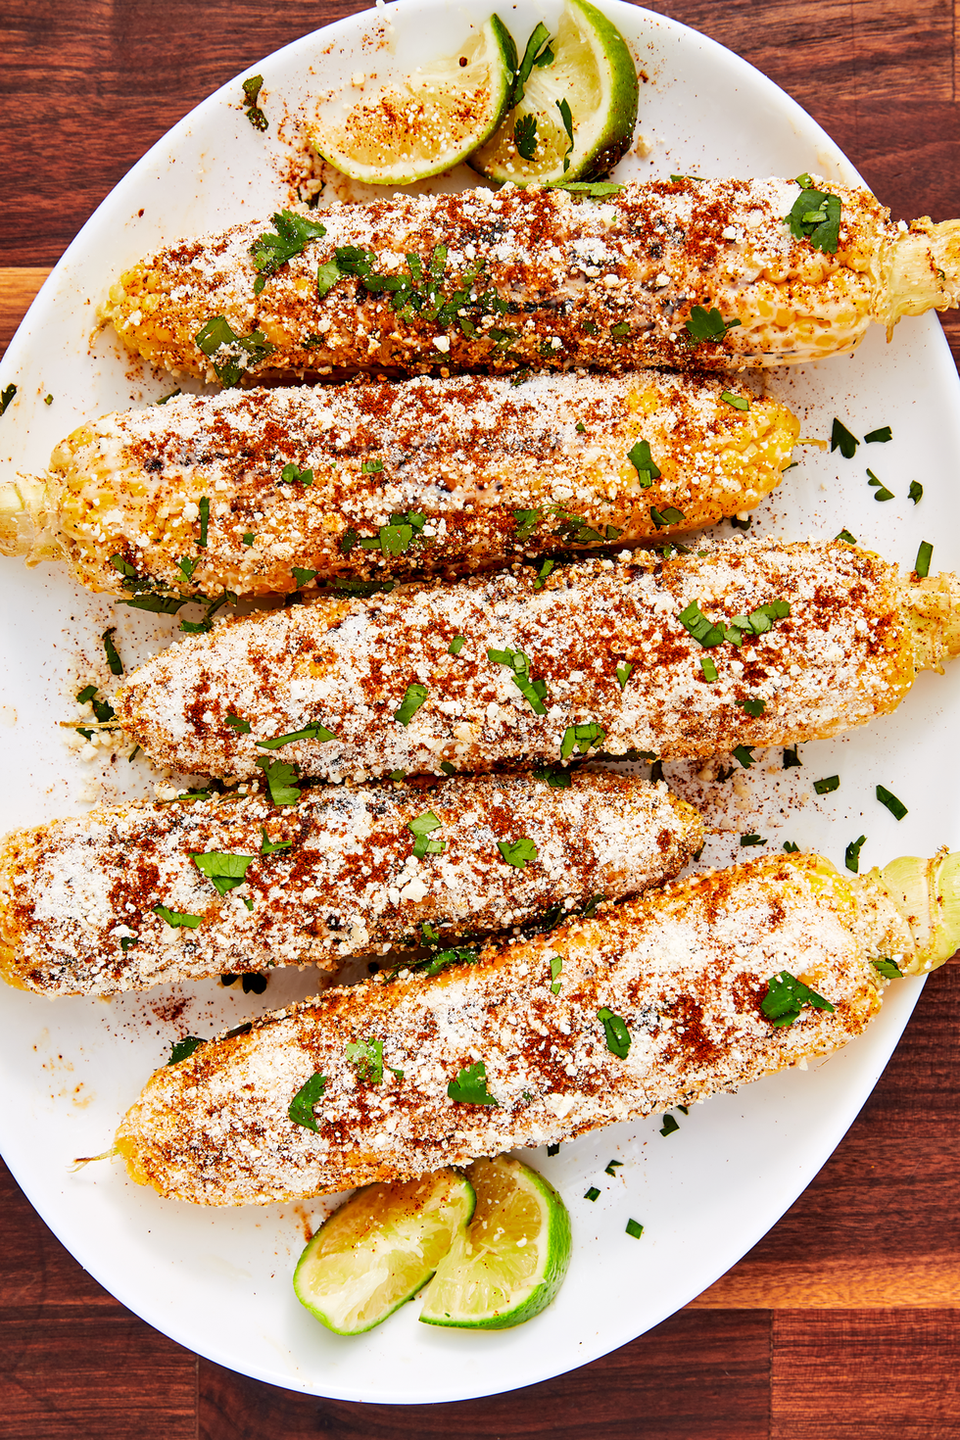 "<p>It will change the way you think about mayo. Trust us.</p><p>Get the recipe from <a href=""https://www.delish.com/cooking/recipe-ideas/recipes/a47269/mexican-street-corn-elote-recipe/"" rel=""nofollow noopener"" target=""_blank"" data-ylk=""slk:Delish"" class=""link rapid-noclick-resp"">Delish</a>.</p>"